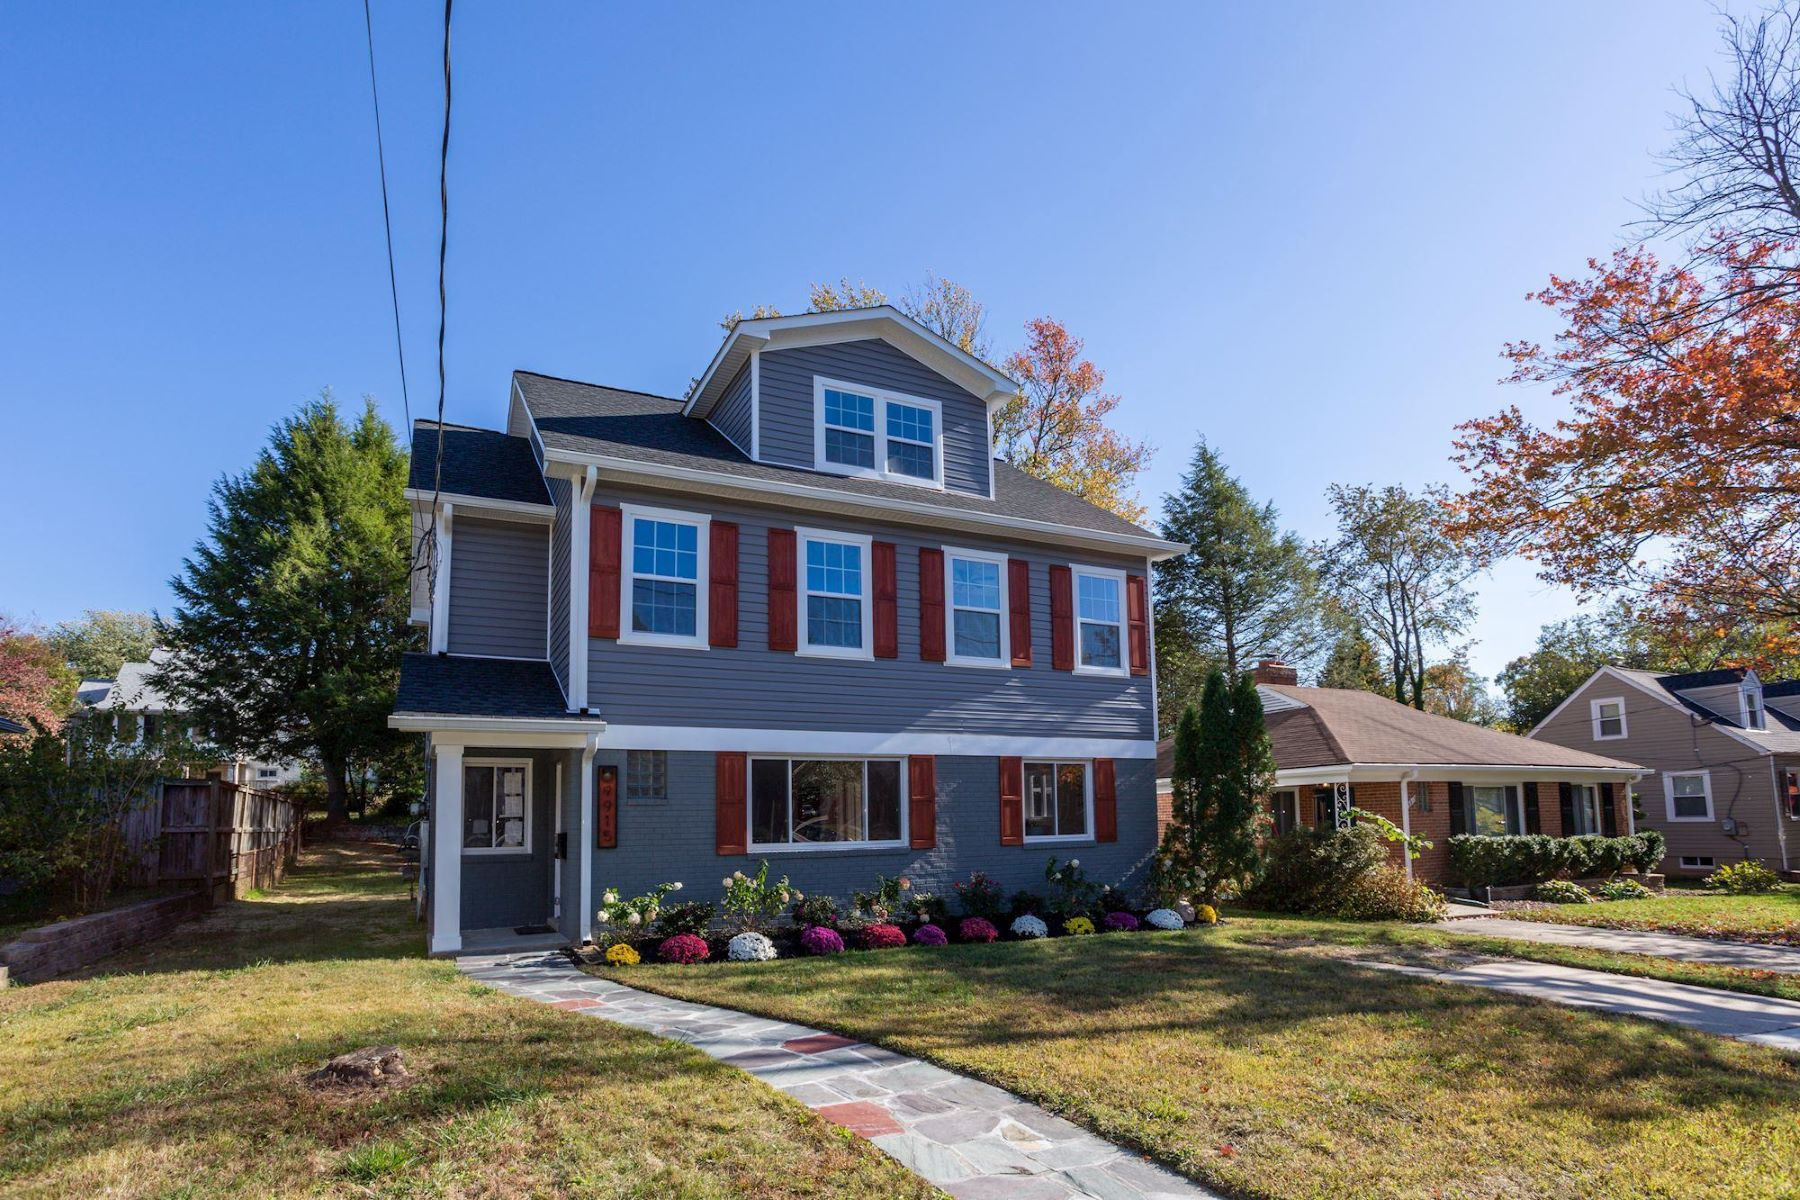 Single Family Homes for Sale at 9915 Lorain Ave Silver Spring, Maryland 20901 United States